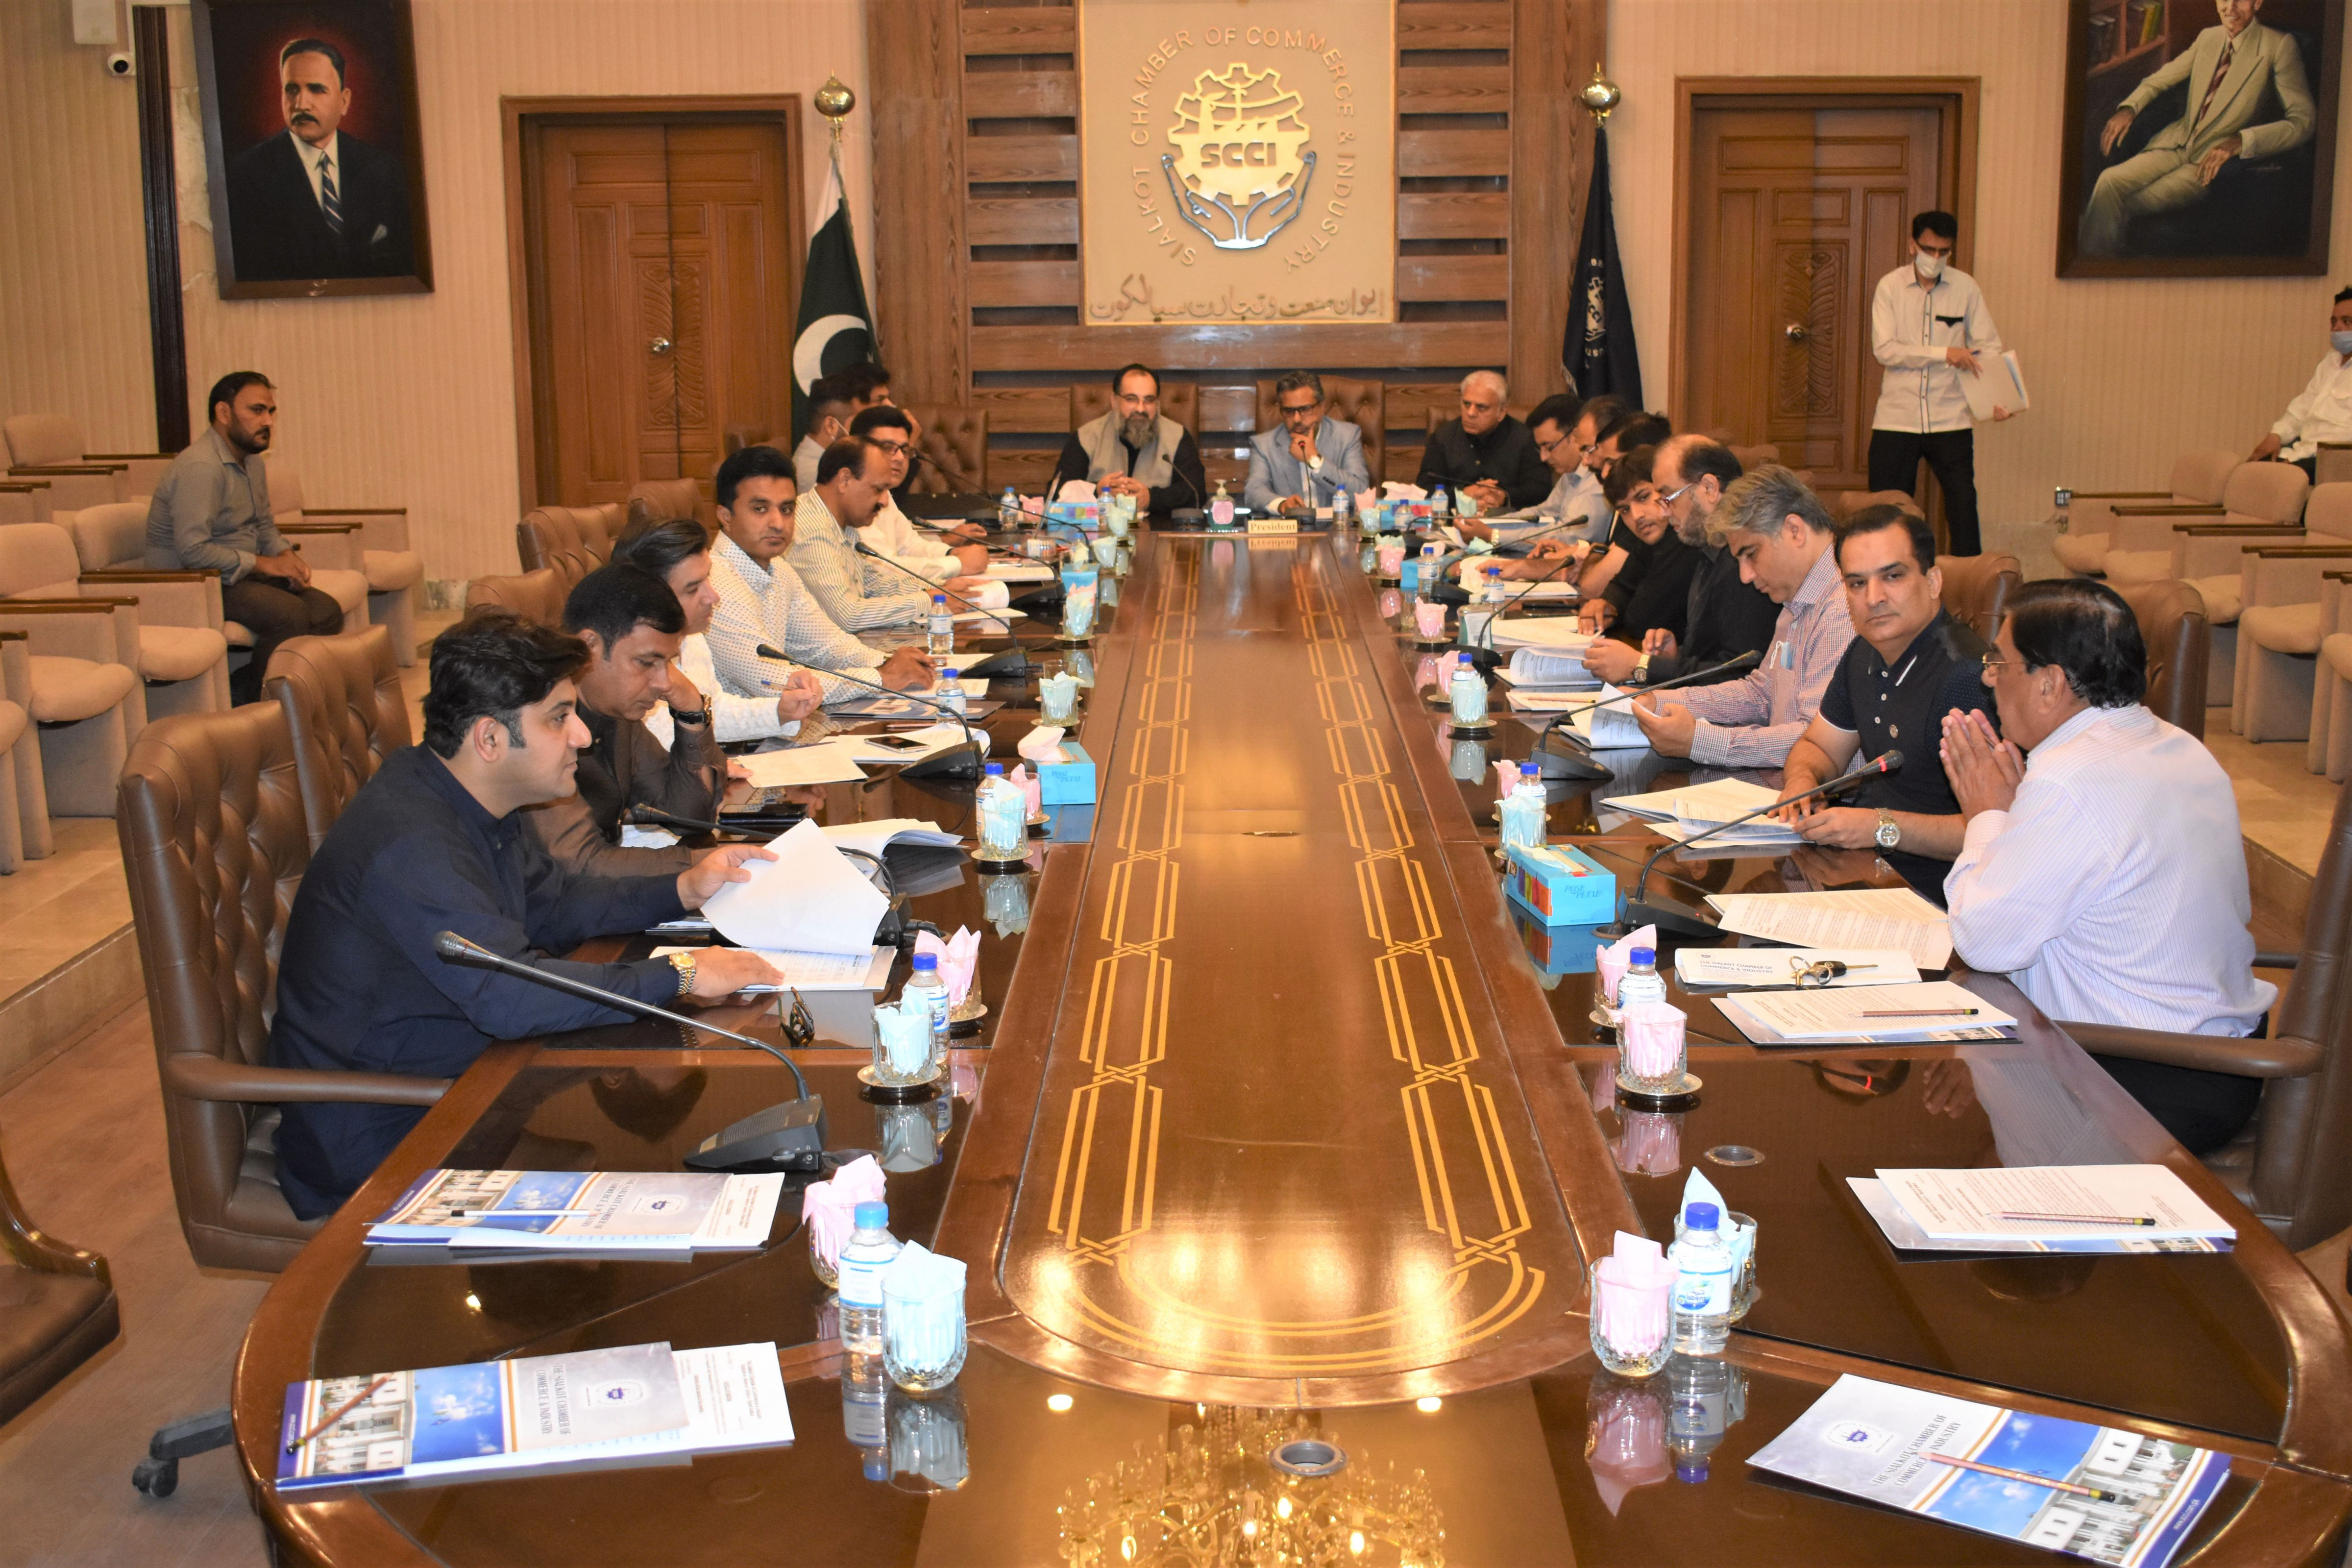 On August 30, 2021, Executive Committee meeting of Sialkot Chamber of Commerce & Industry was held for the month August 2021.